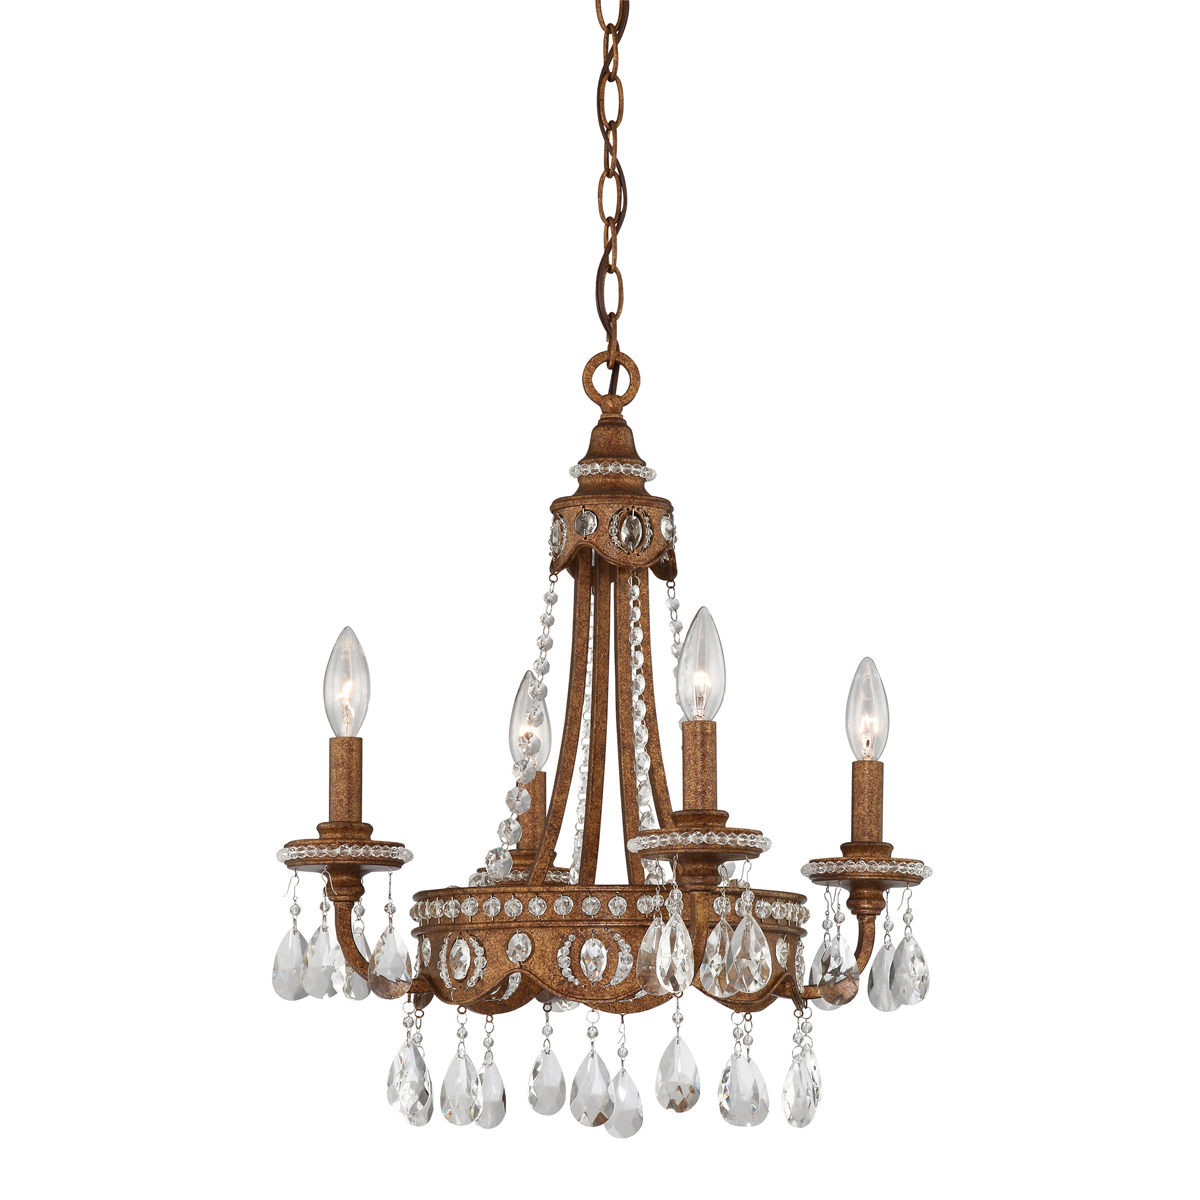 Primary image for Alston 4-Light Chandelier in Bolivian Bronze